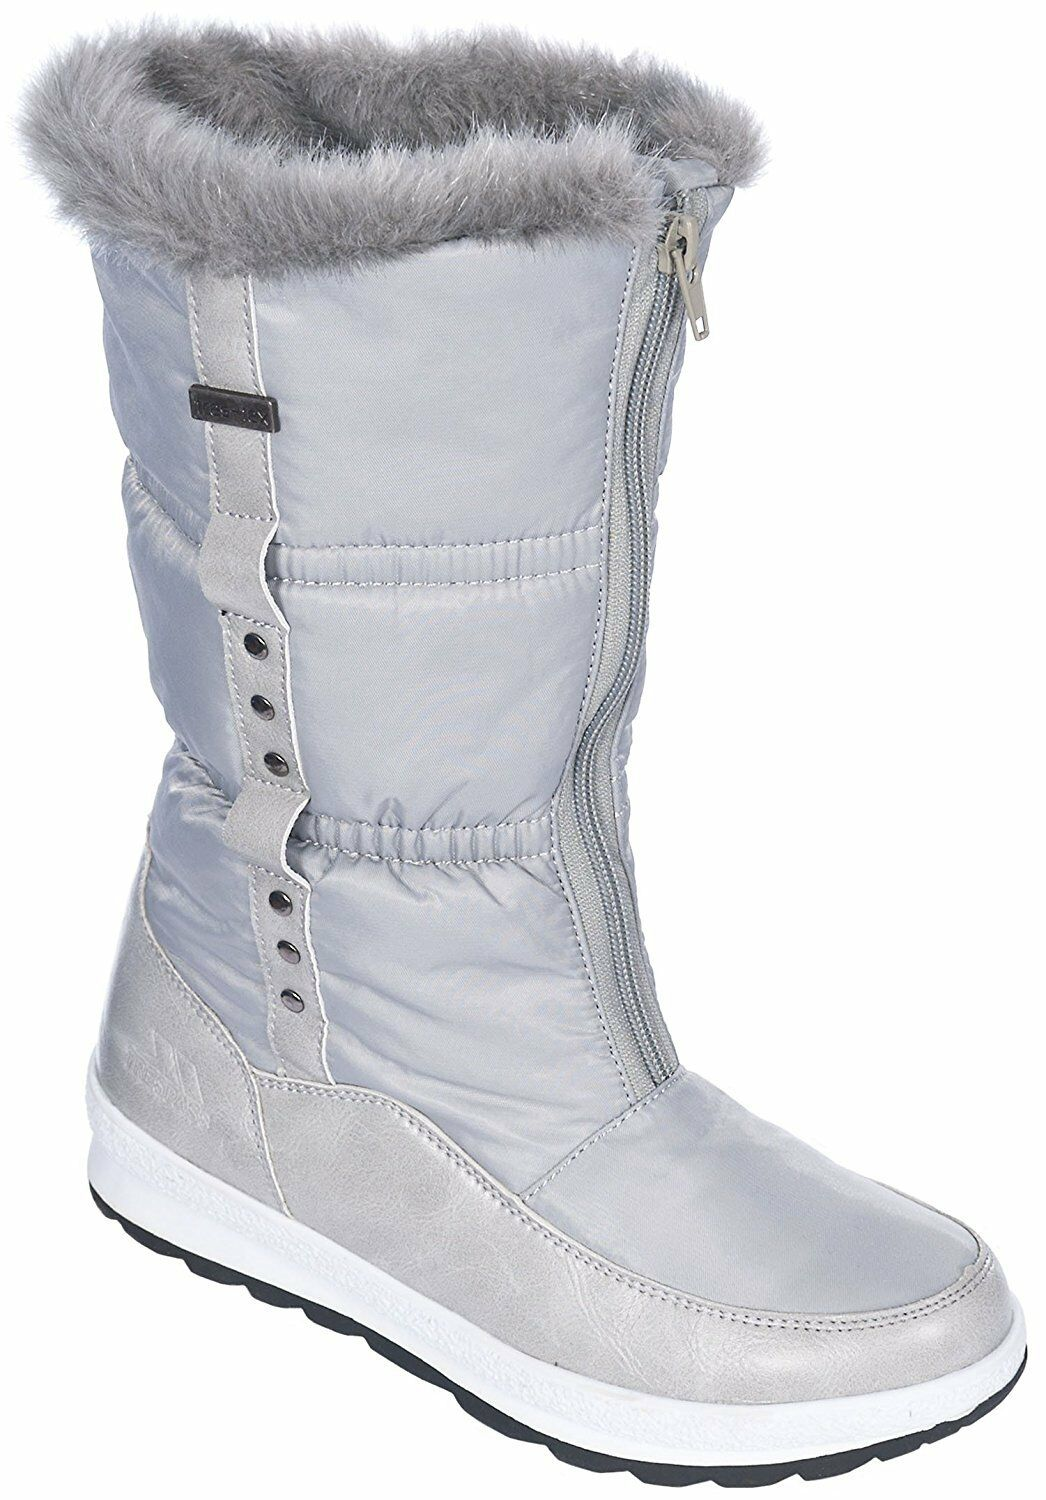 Trespass Virgo Ladies Snow Boots  UK 4 EUR 37 REF 3090 R